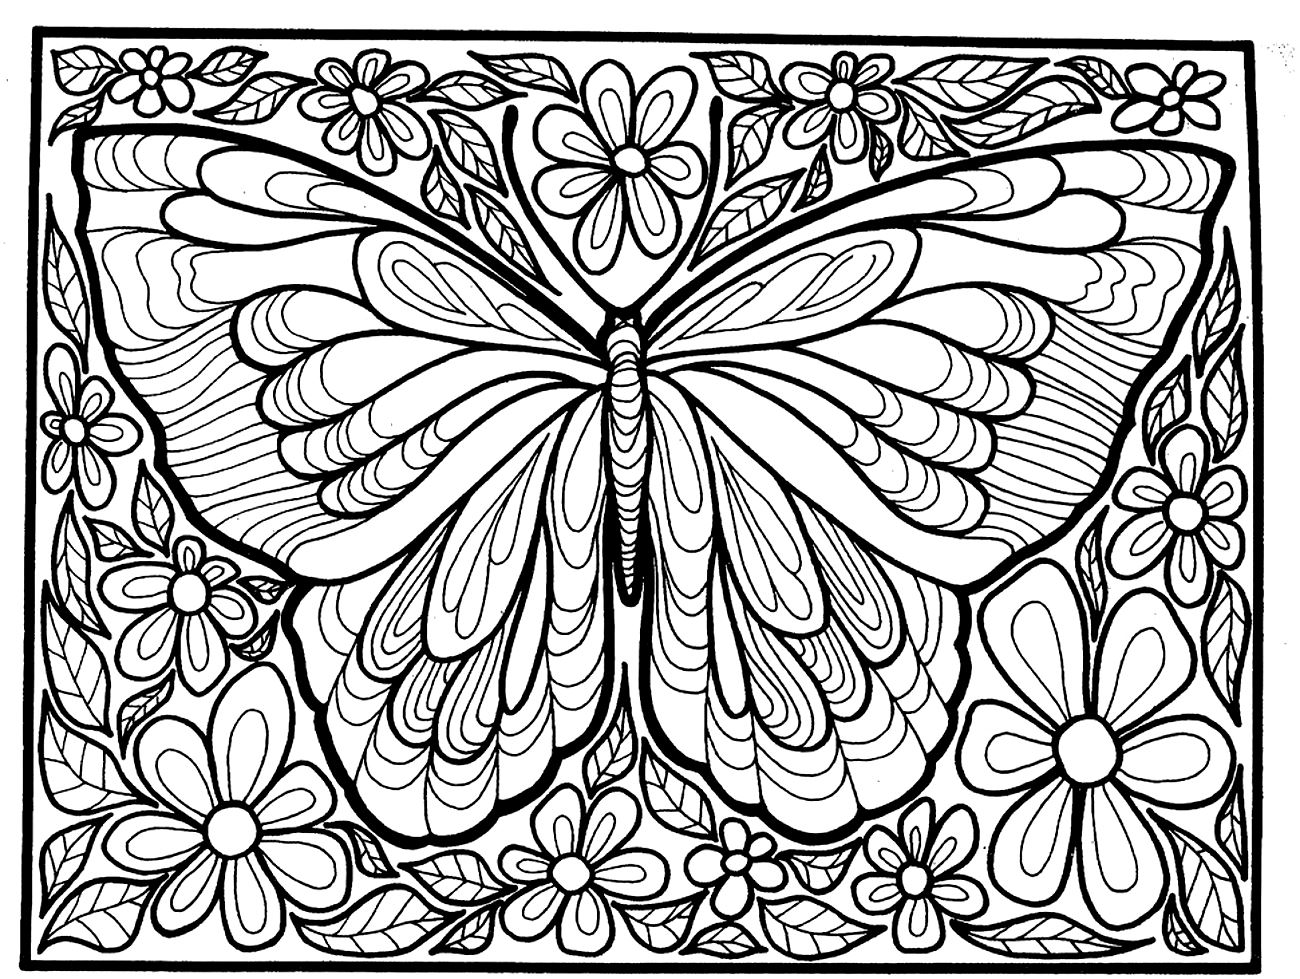 Coloring Picture Of A Big Butterfly With Flowers Around Occupying All The Space Available